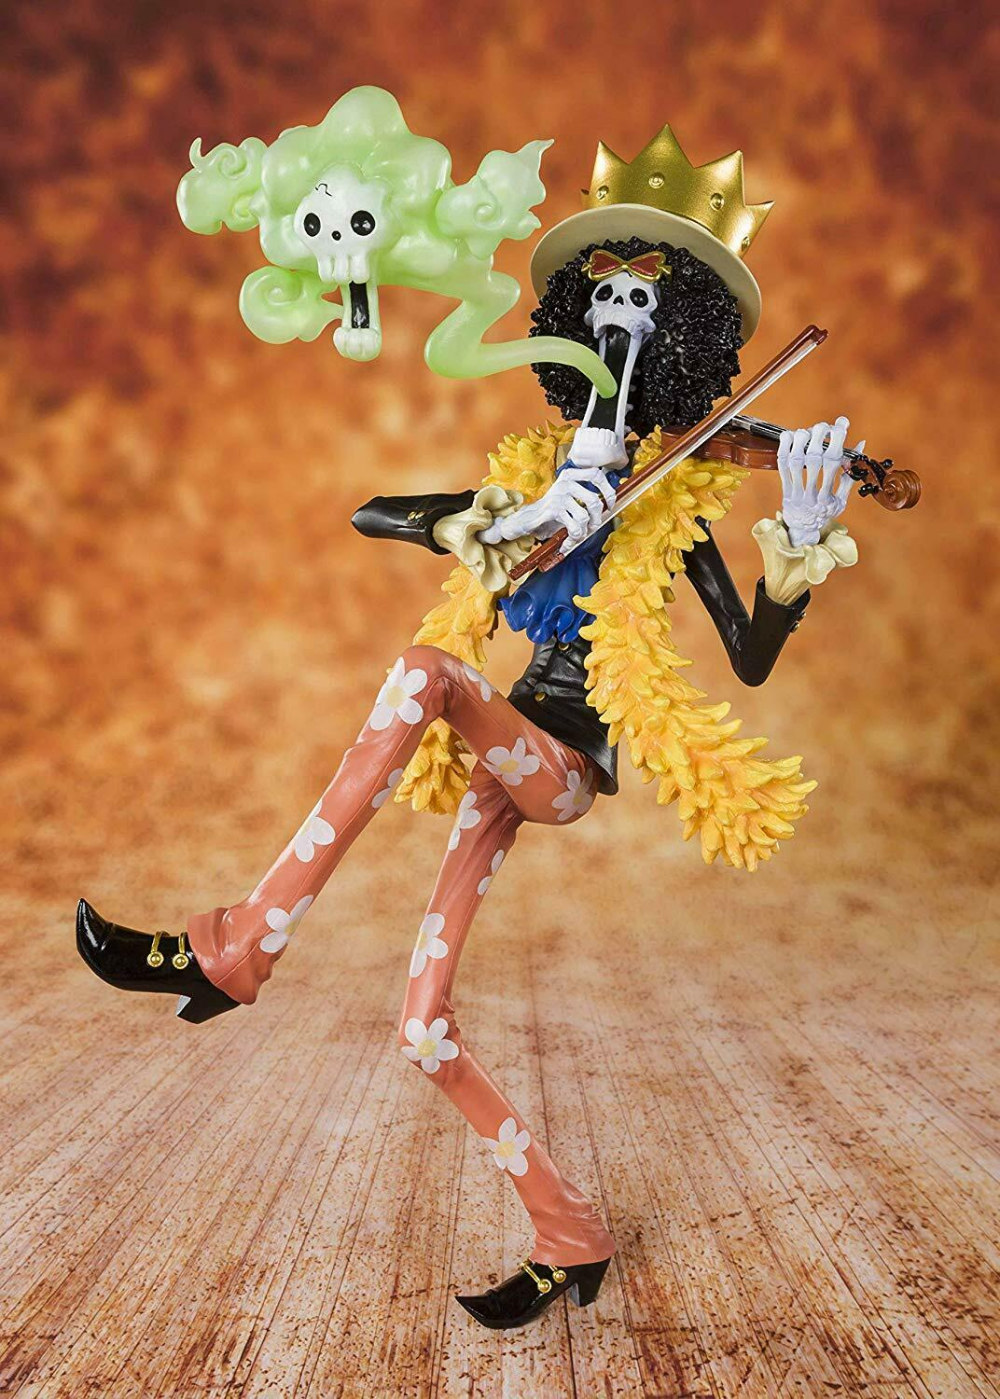 Details about ☀ One Piece Brook Bandai Tamashii Nations